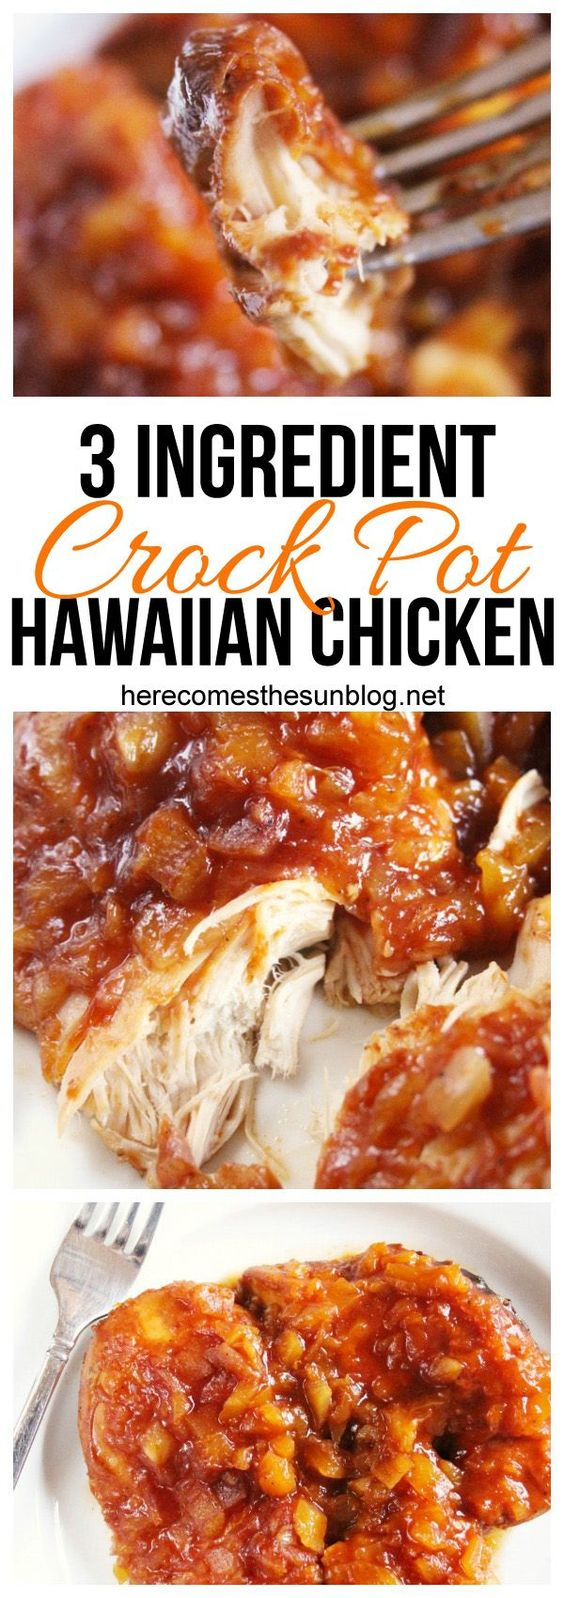 CROCK POT HAWAIIAN CHICKEN #crockpot #hawaiian #chicken #chickenrecipes #tasty #tastyrecipes #delicious #deliciousrecipes